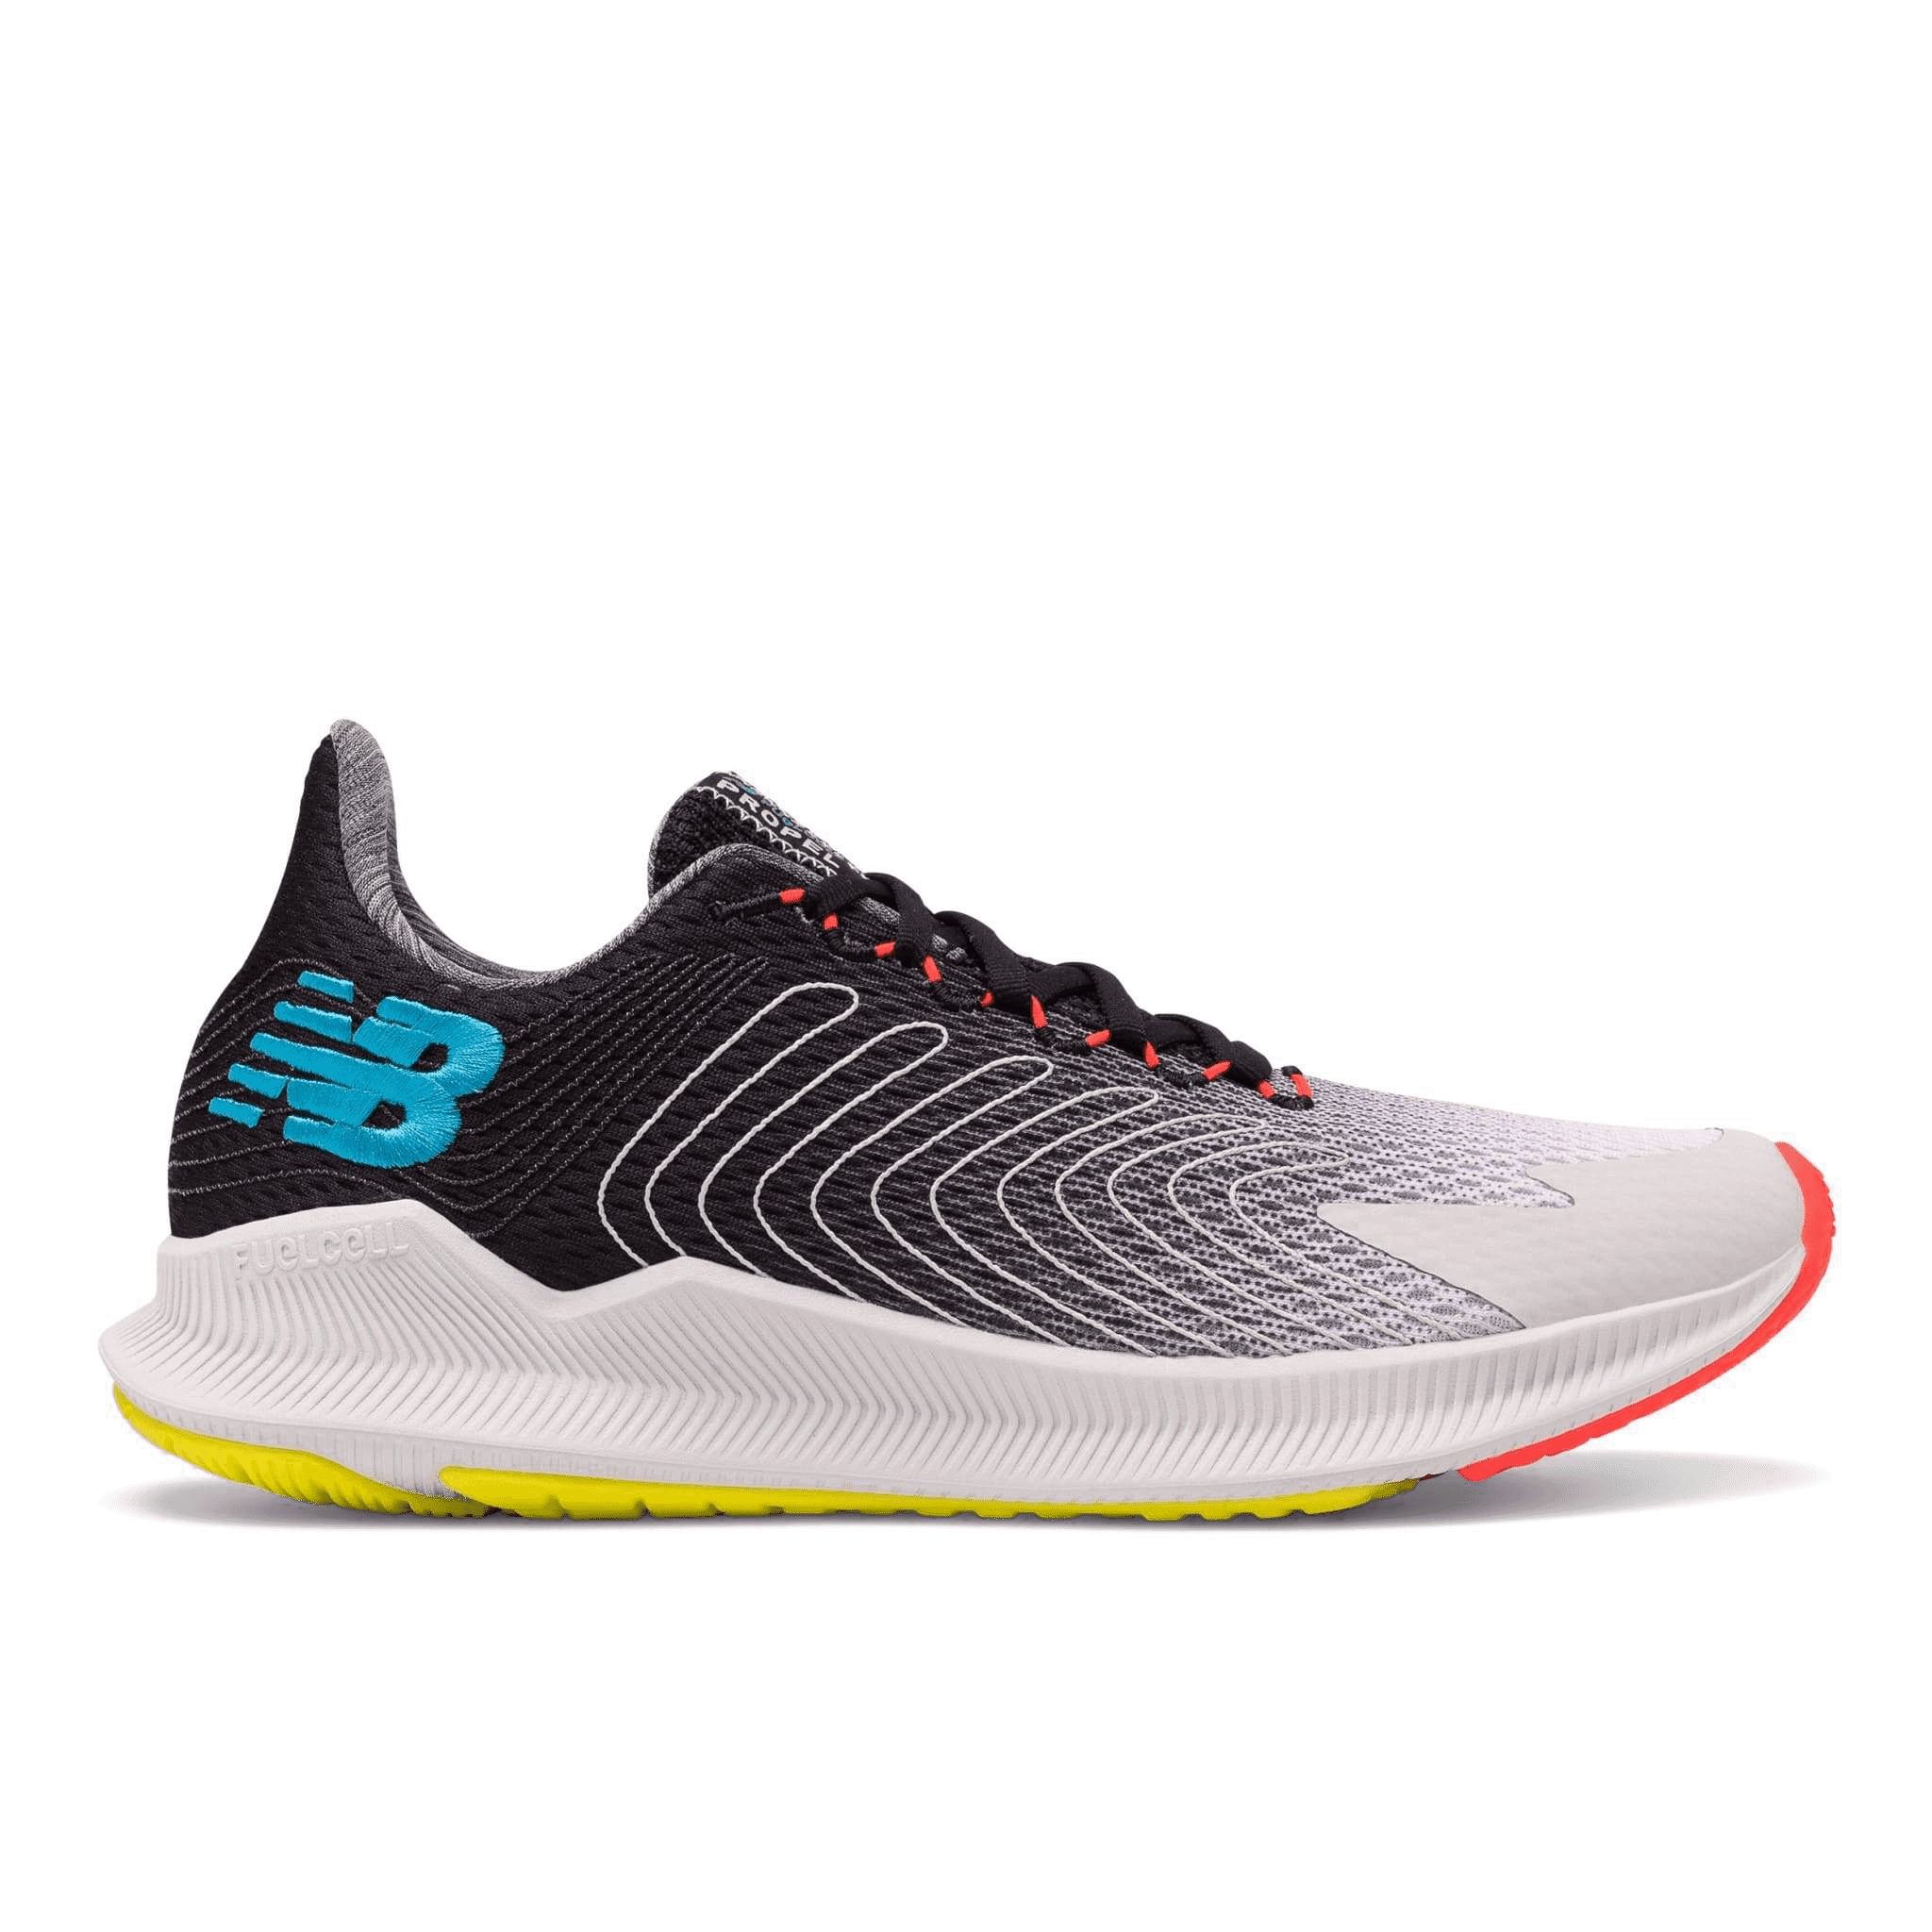 New Balance Men's FuelCell Propel